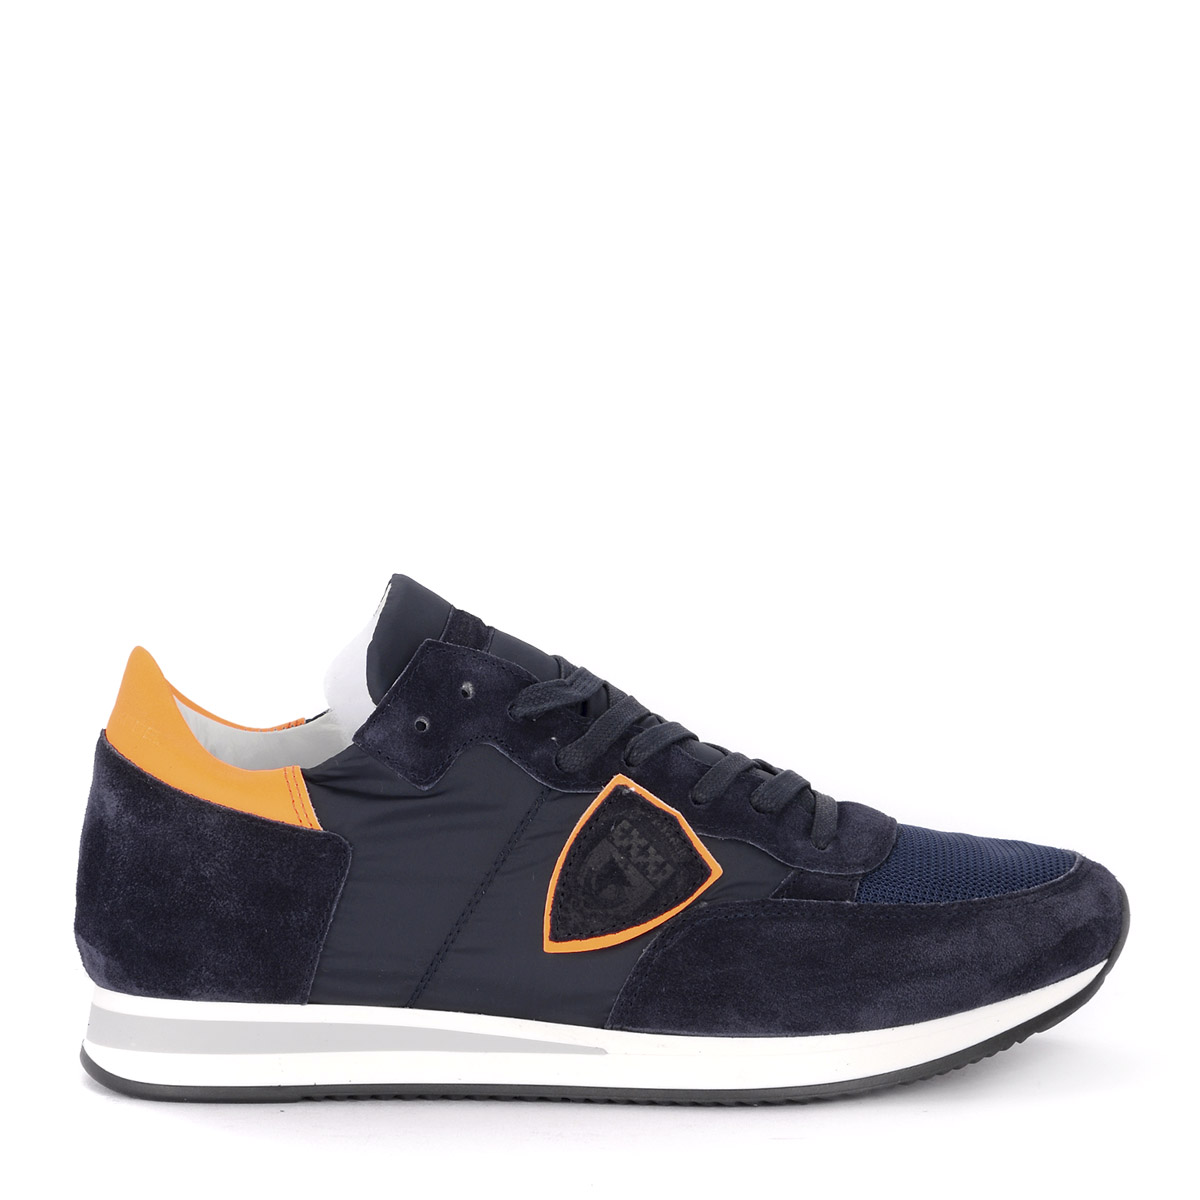 zapatillas Philippe model tropez in Suede and Nylon azul and naranja Neon